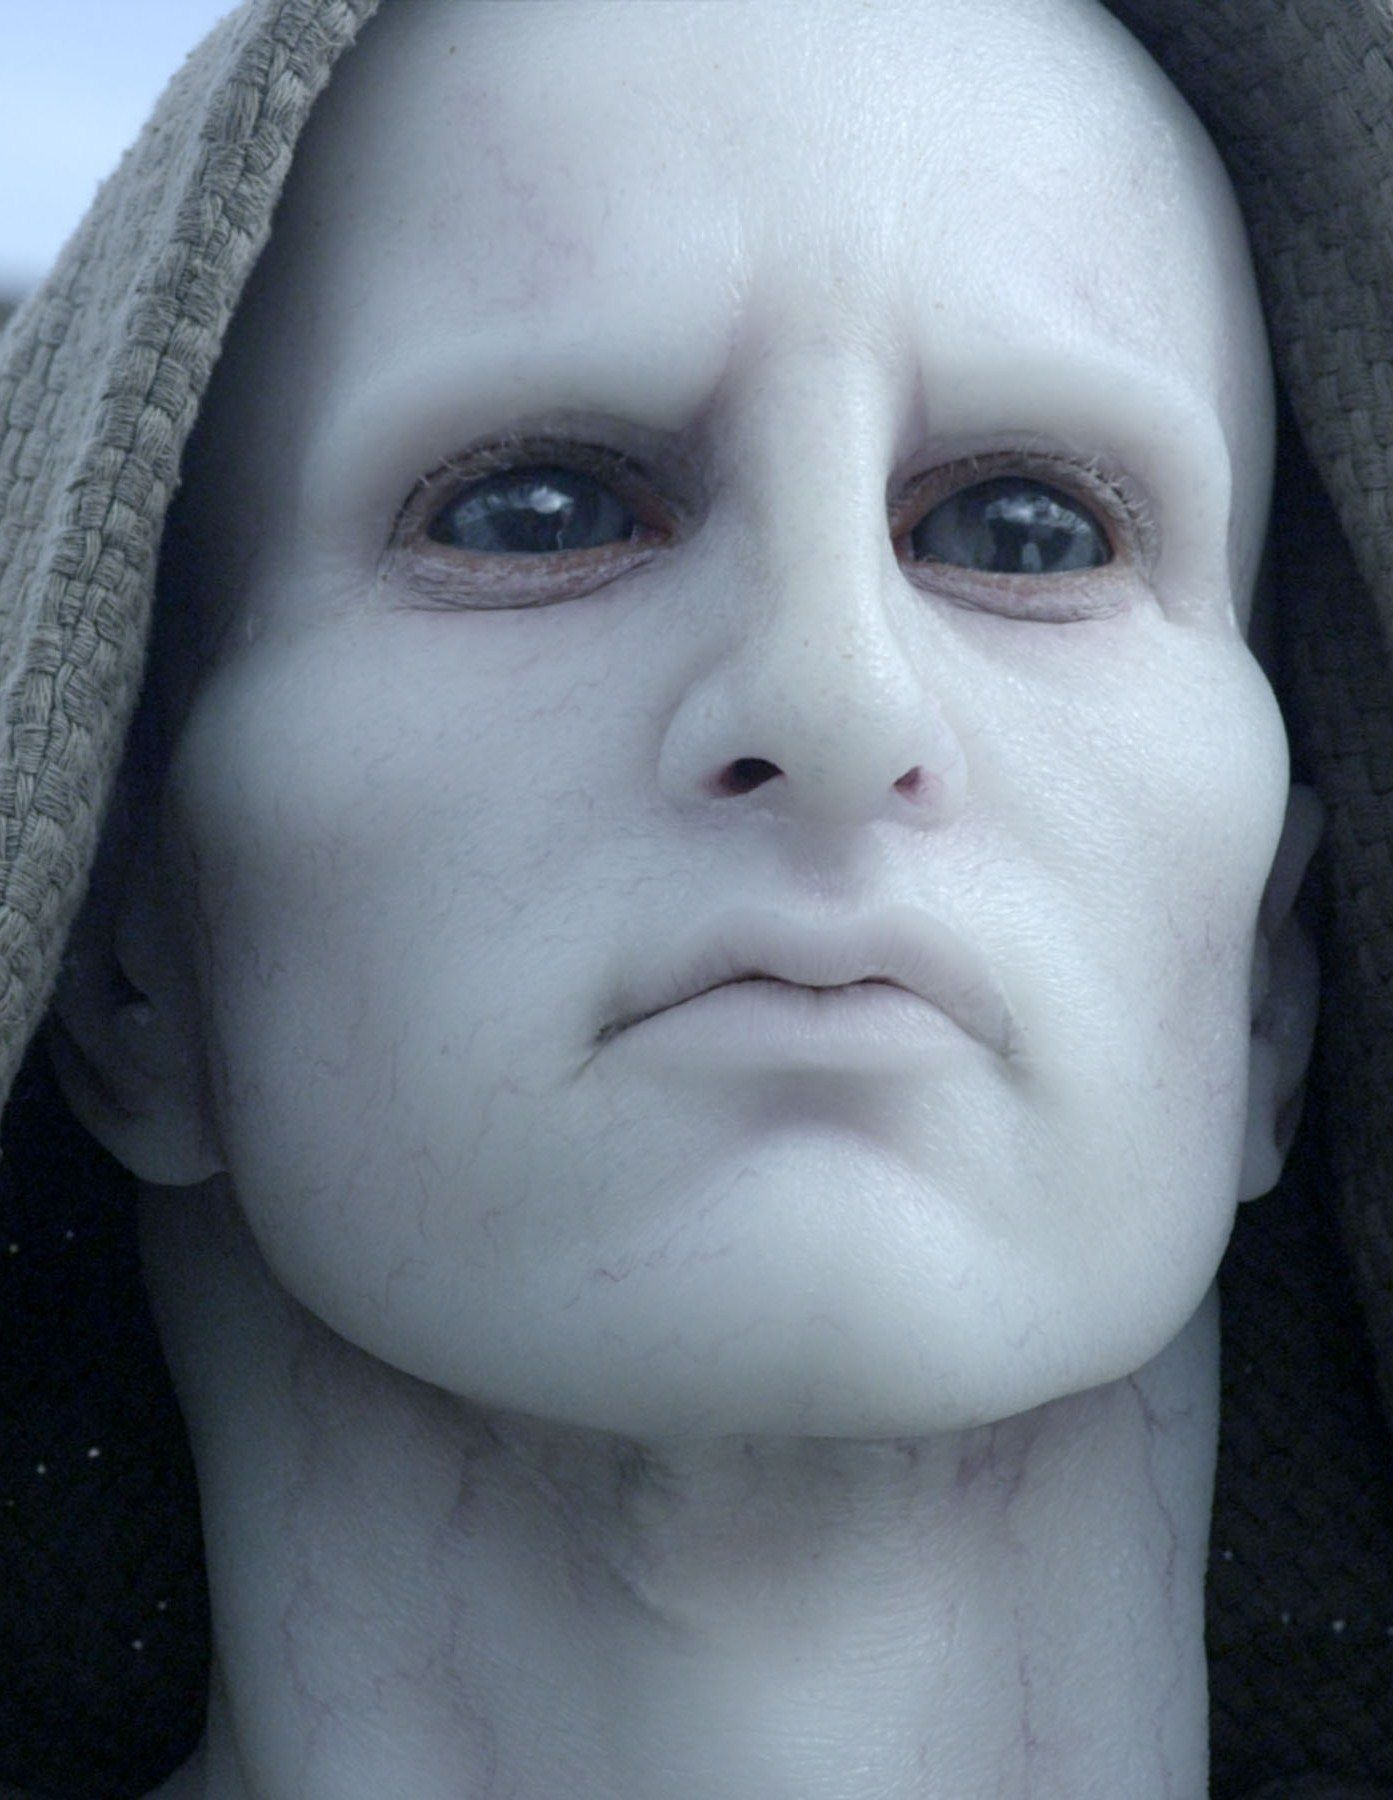 From Prometheus Doesn T He Look Like Voldemort Mixed With